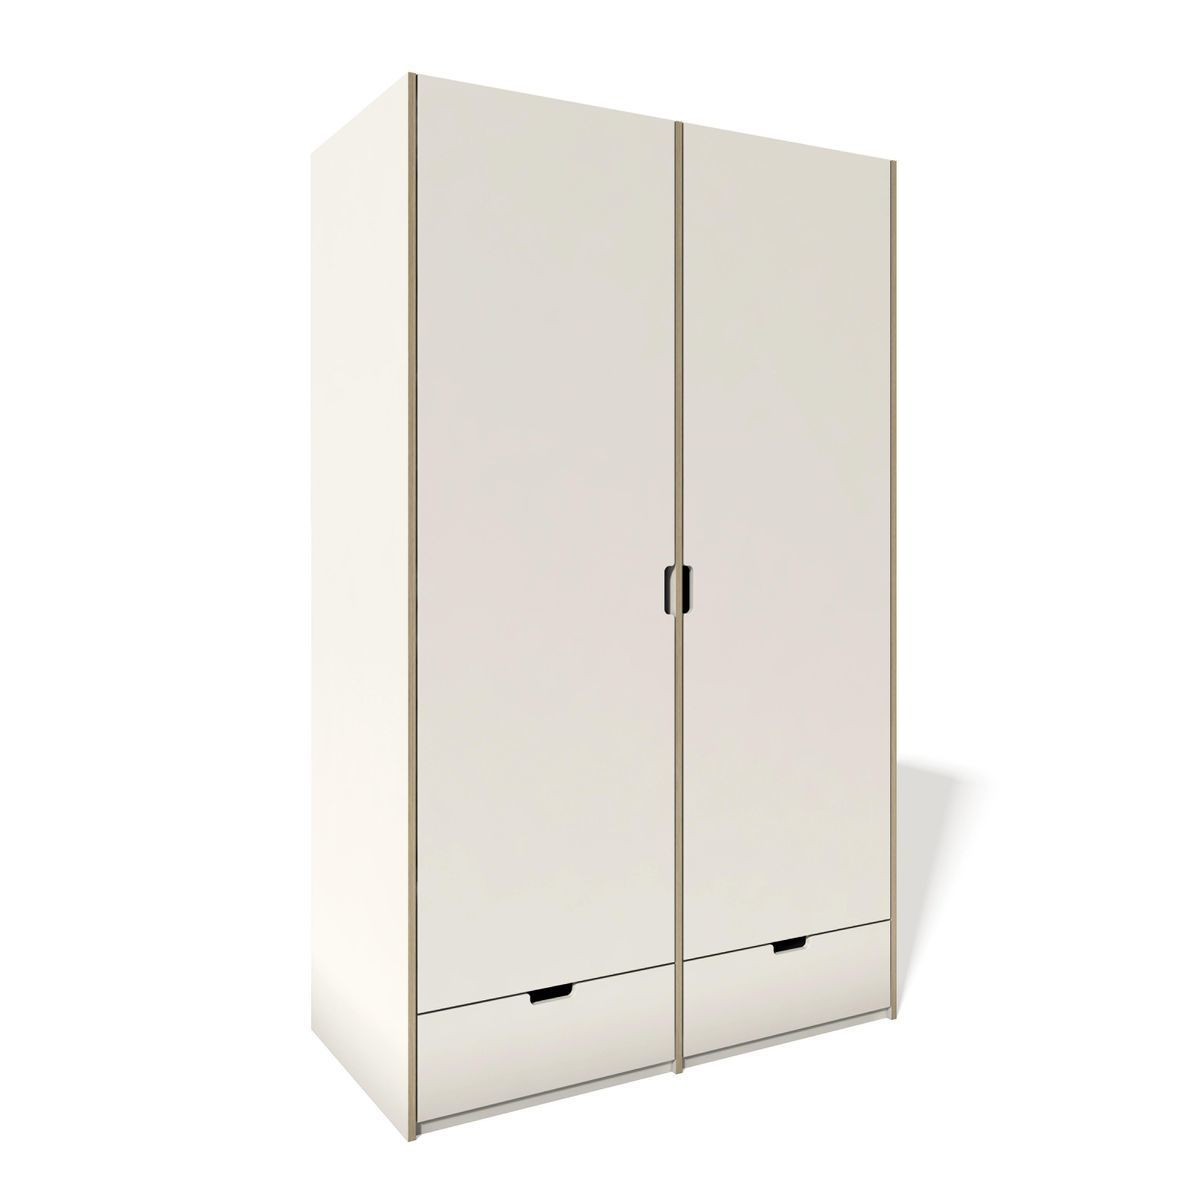 modular anbaubar cupboard system m ller m belwerkst tten. Black Bedroom Furniture Sets. Home Design Ideas